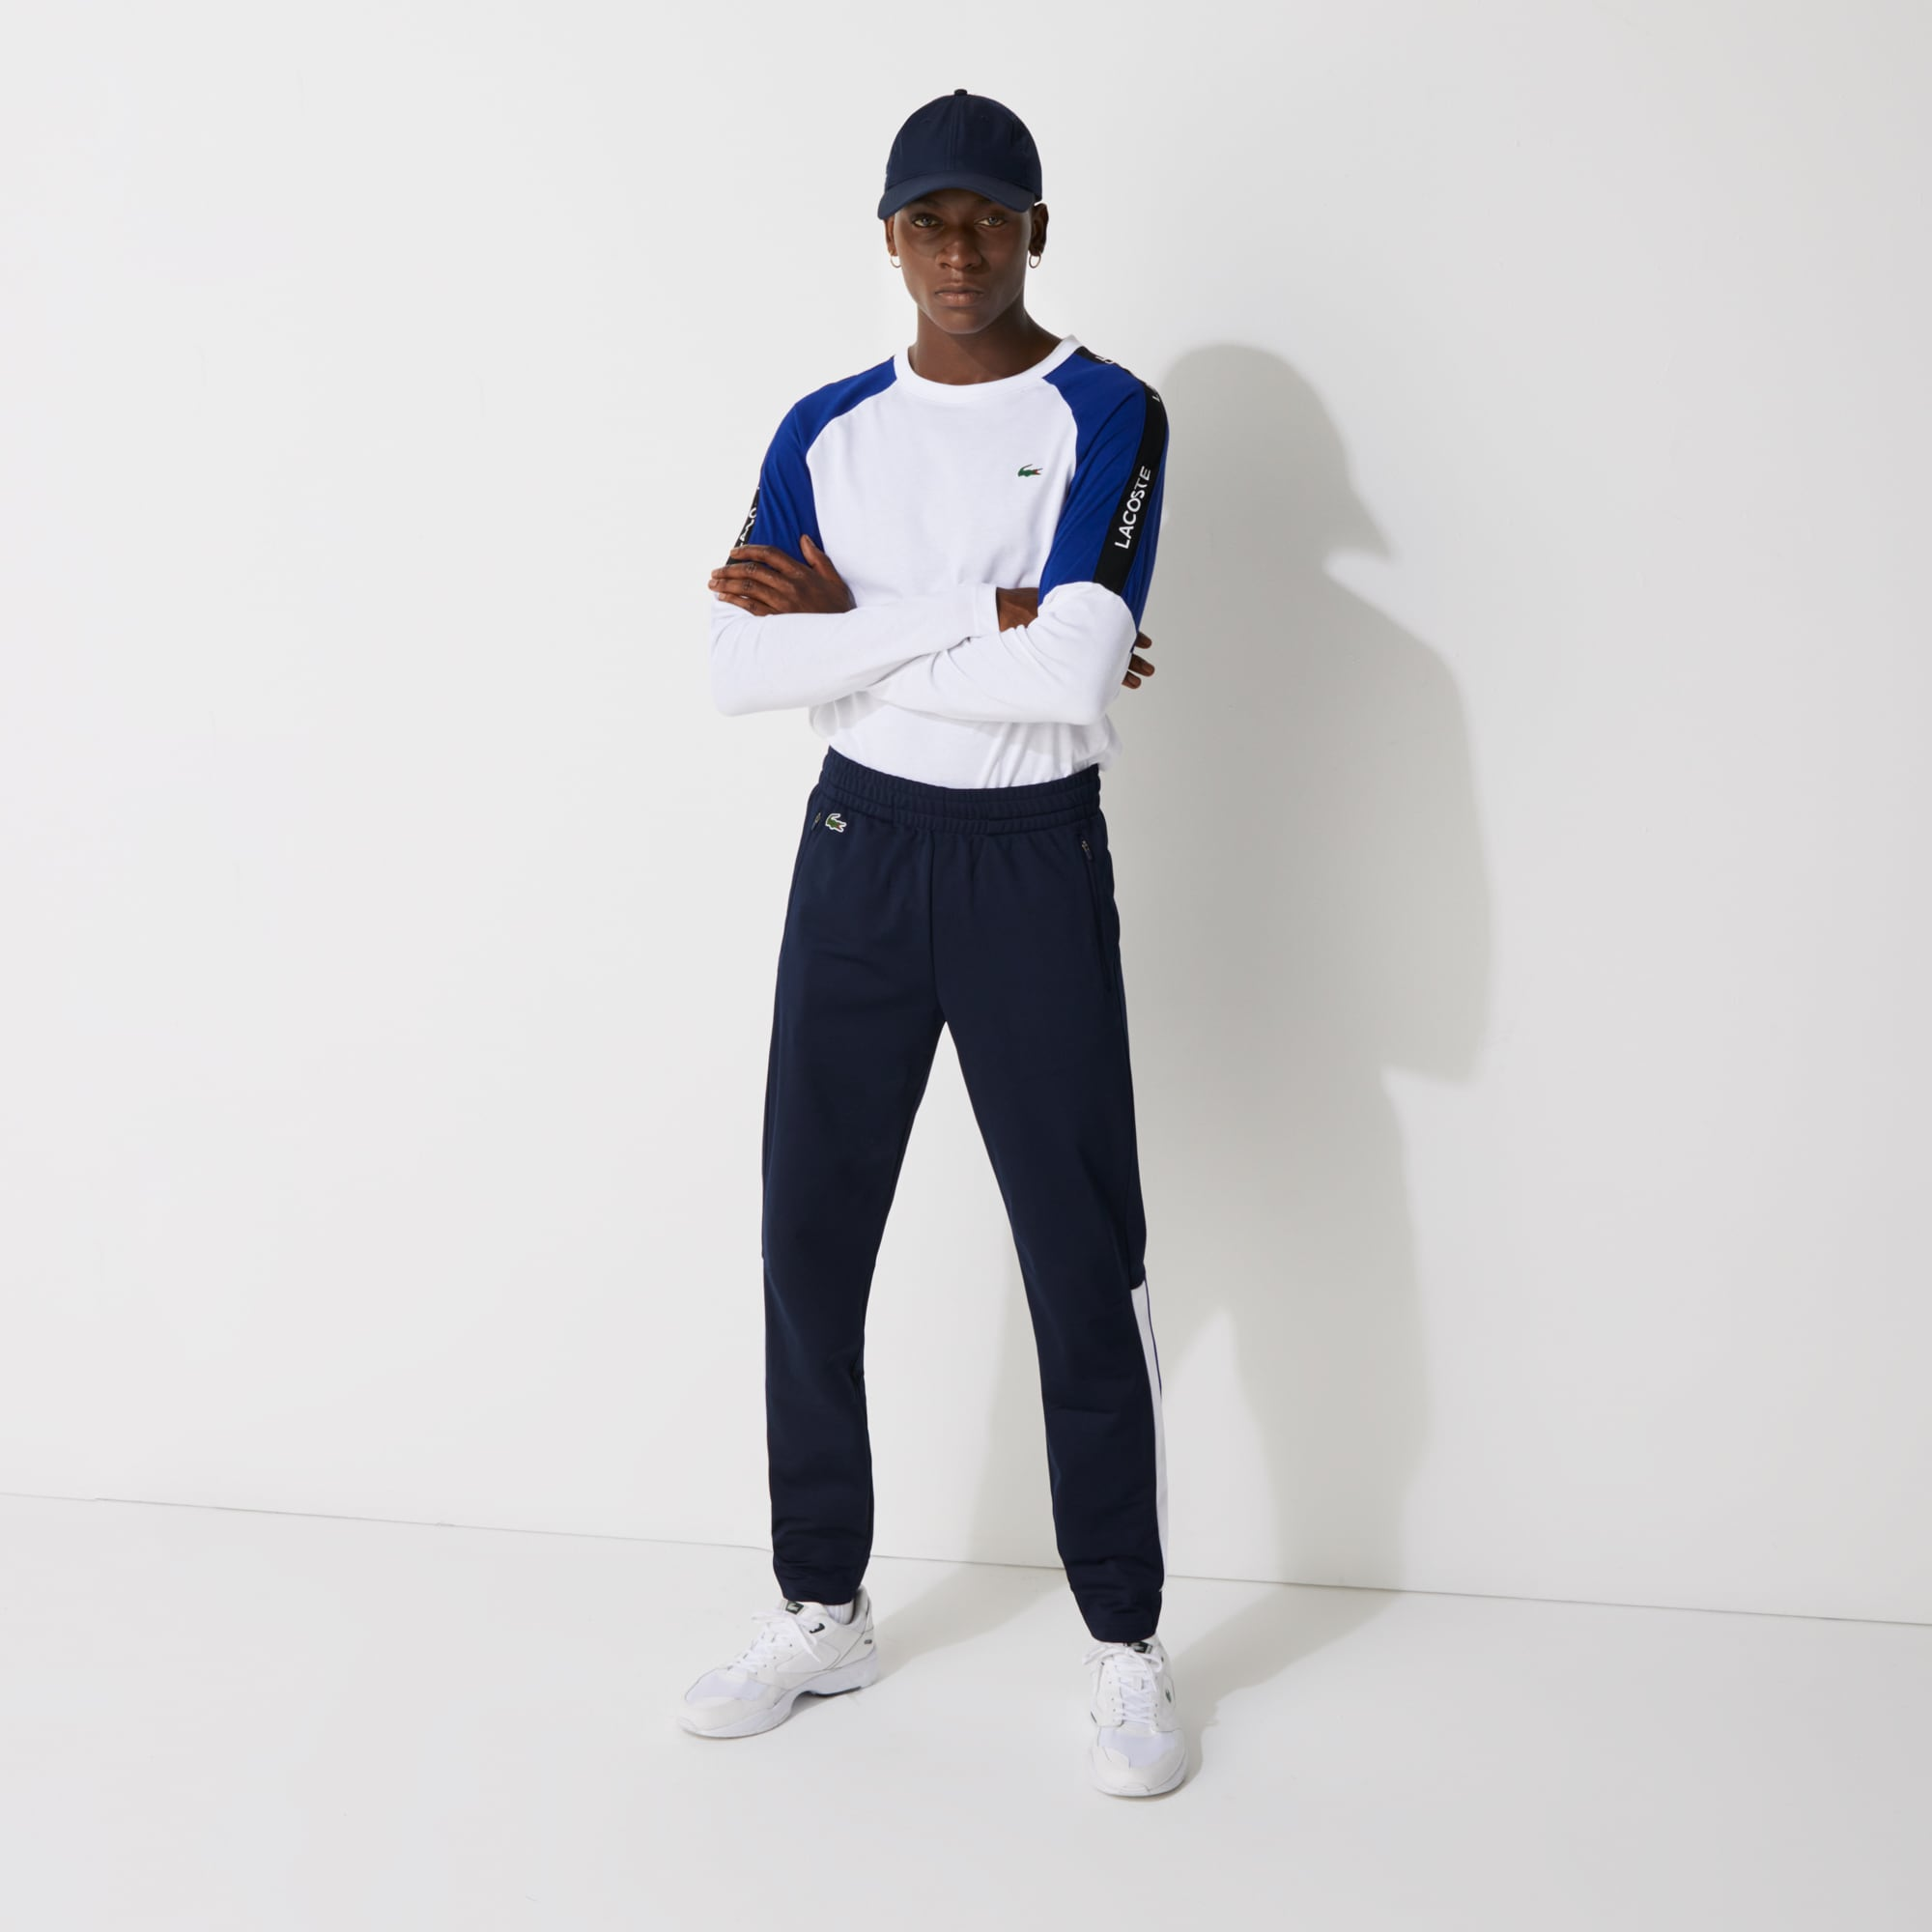 라코스테 Lacoste Men's SPORT Colorblock Tricot Sweatpants,Navy Blue / White / Blue - RHW